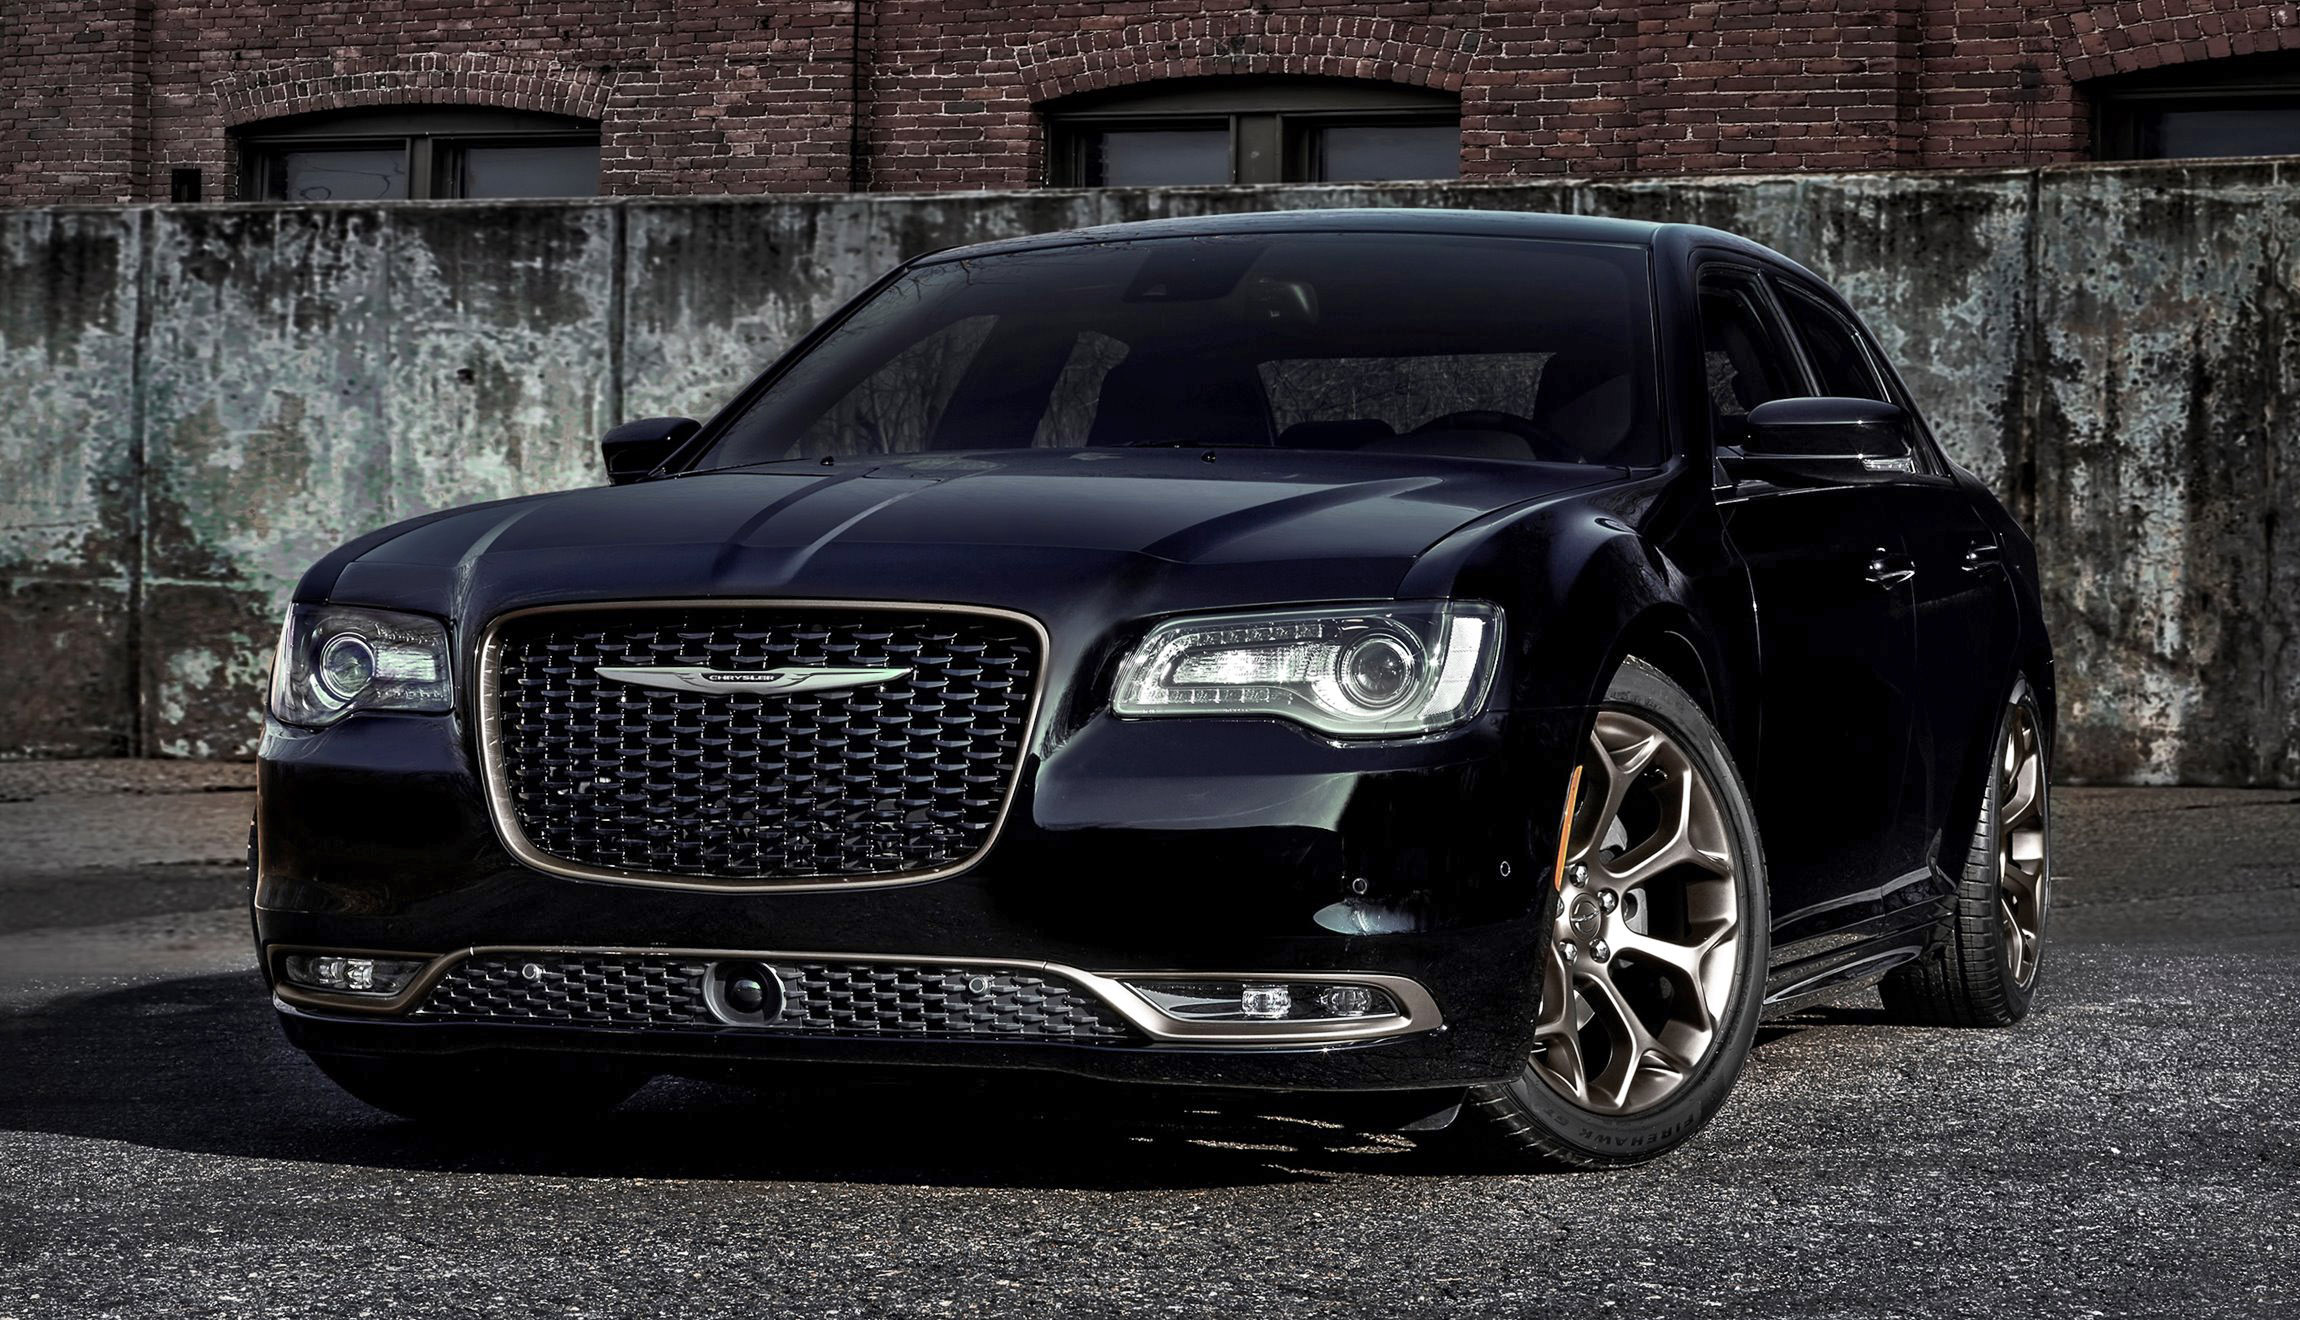 2016 chrysler 300s and 200s alloy editions sport chassis tunes now featuring titanium and dark. Black Bedroom Furniture Sets. Home Design Ideas